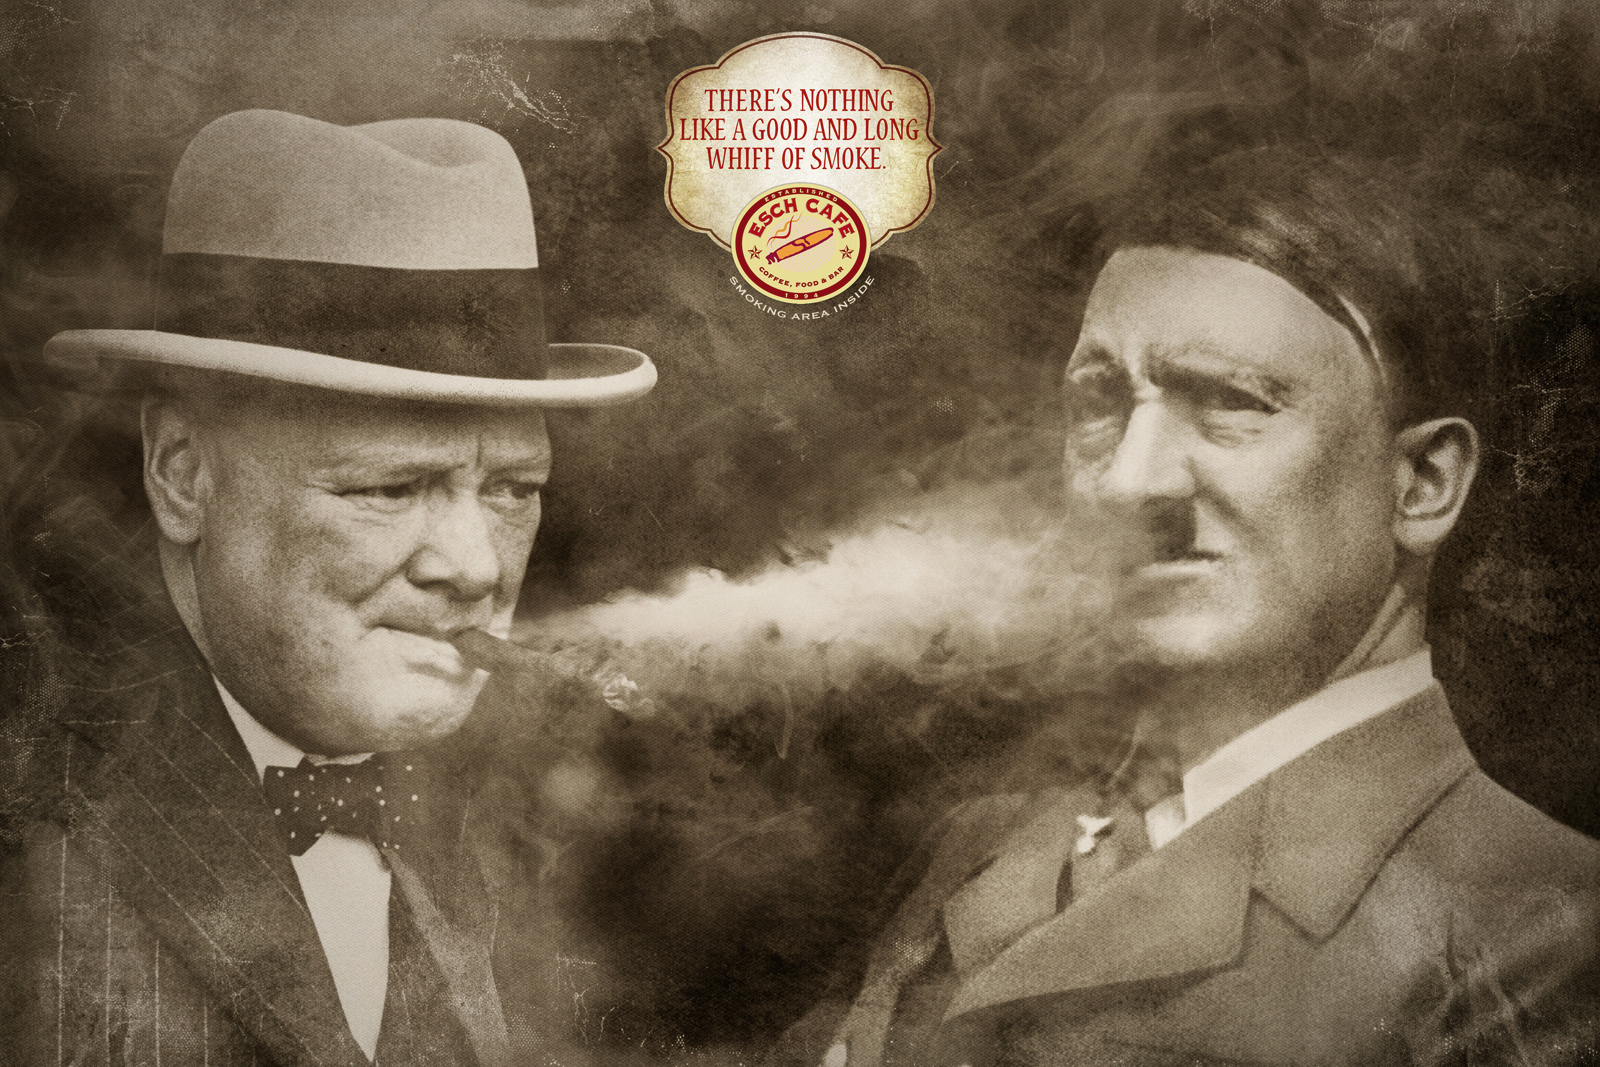 Firecured All Things Tobacco June 2012